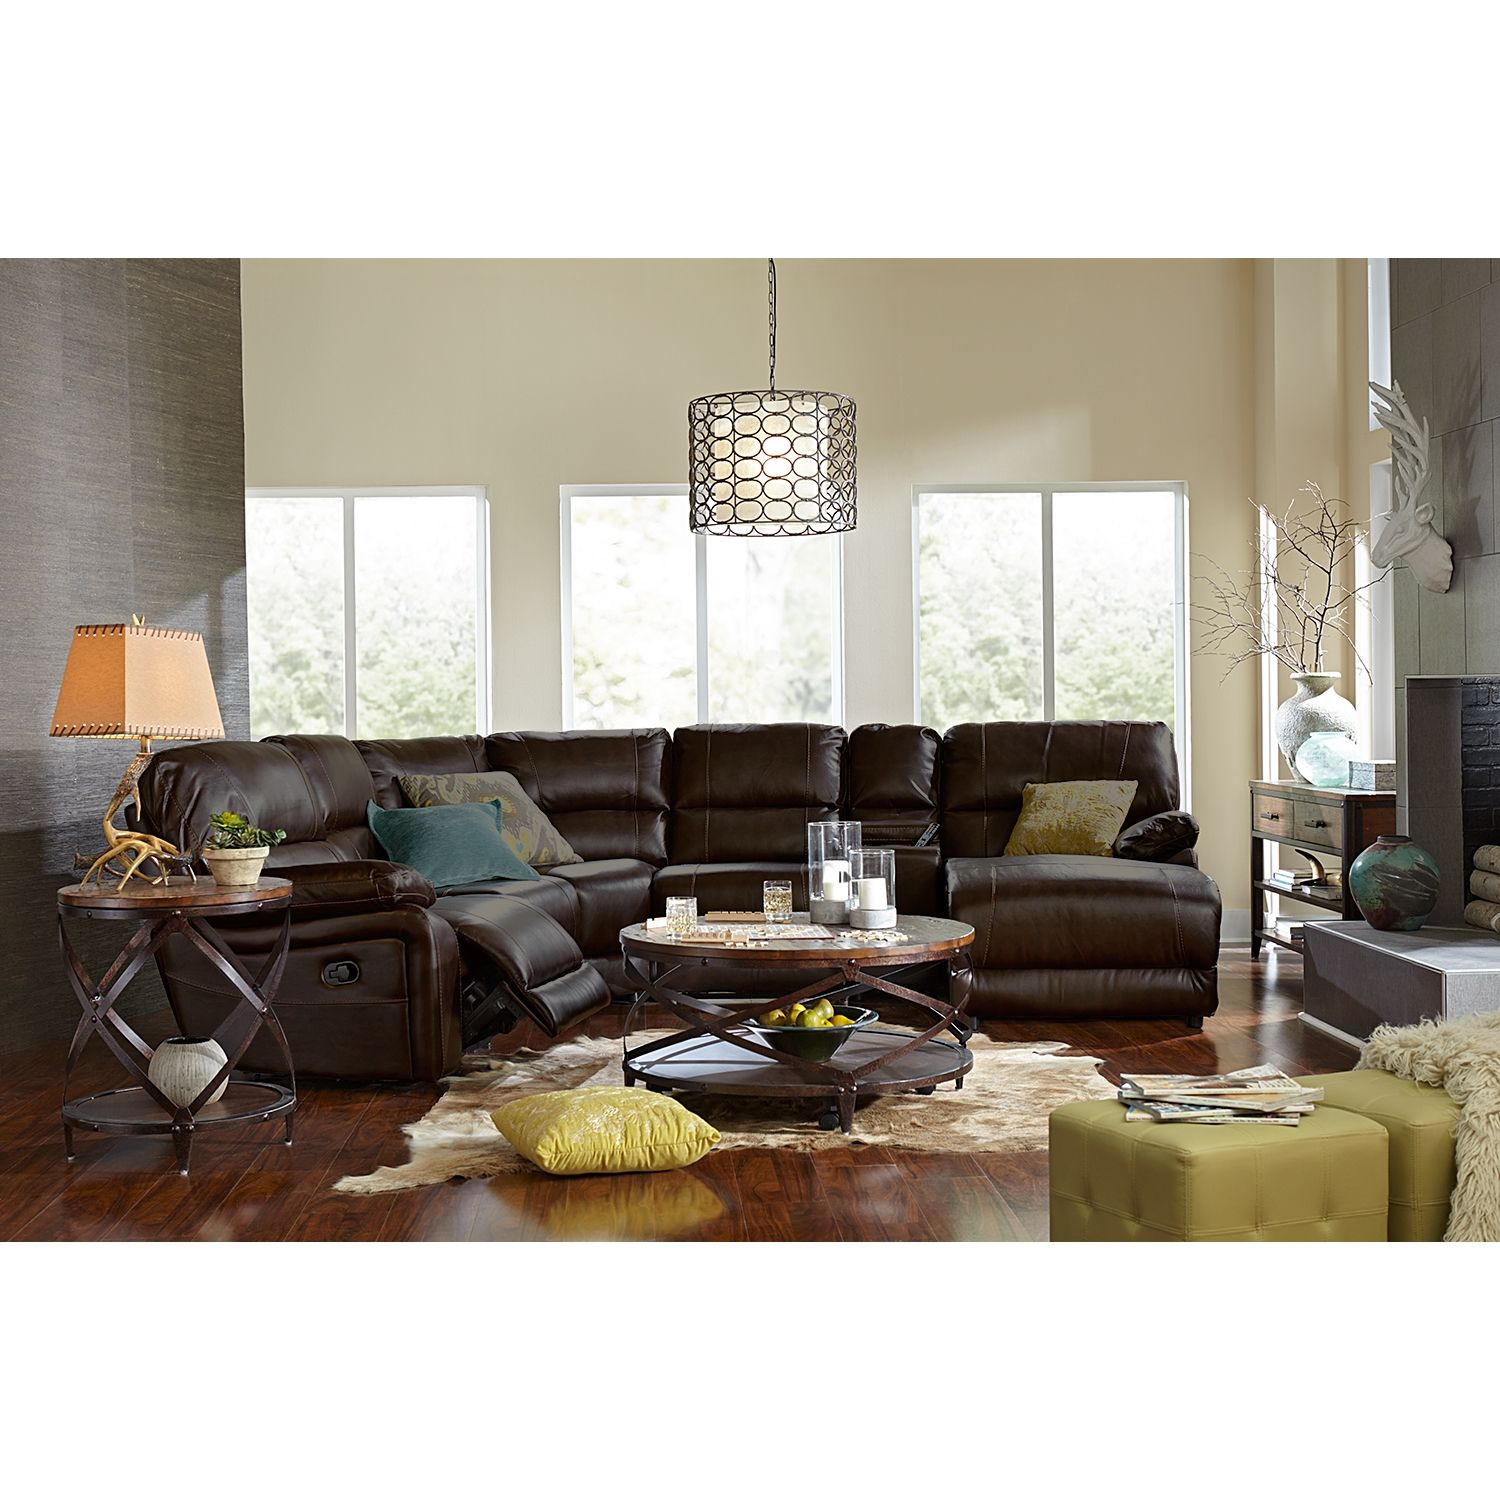 Wyoming Godiva 5 Pc Reclining Sectional Value City Furniture Furniture American Signature Furniture